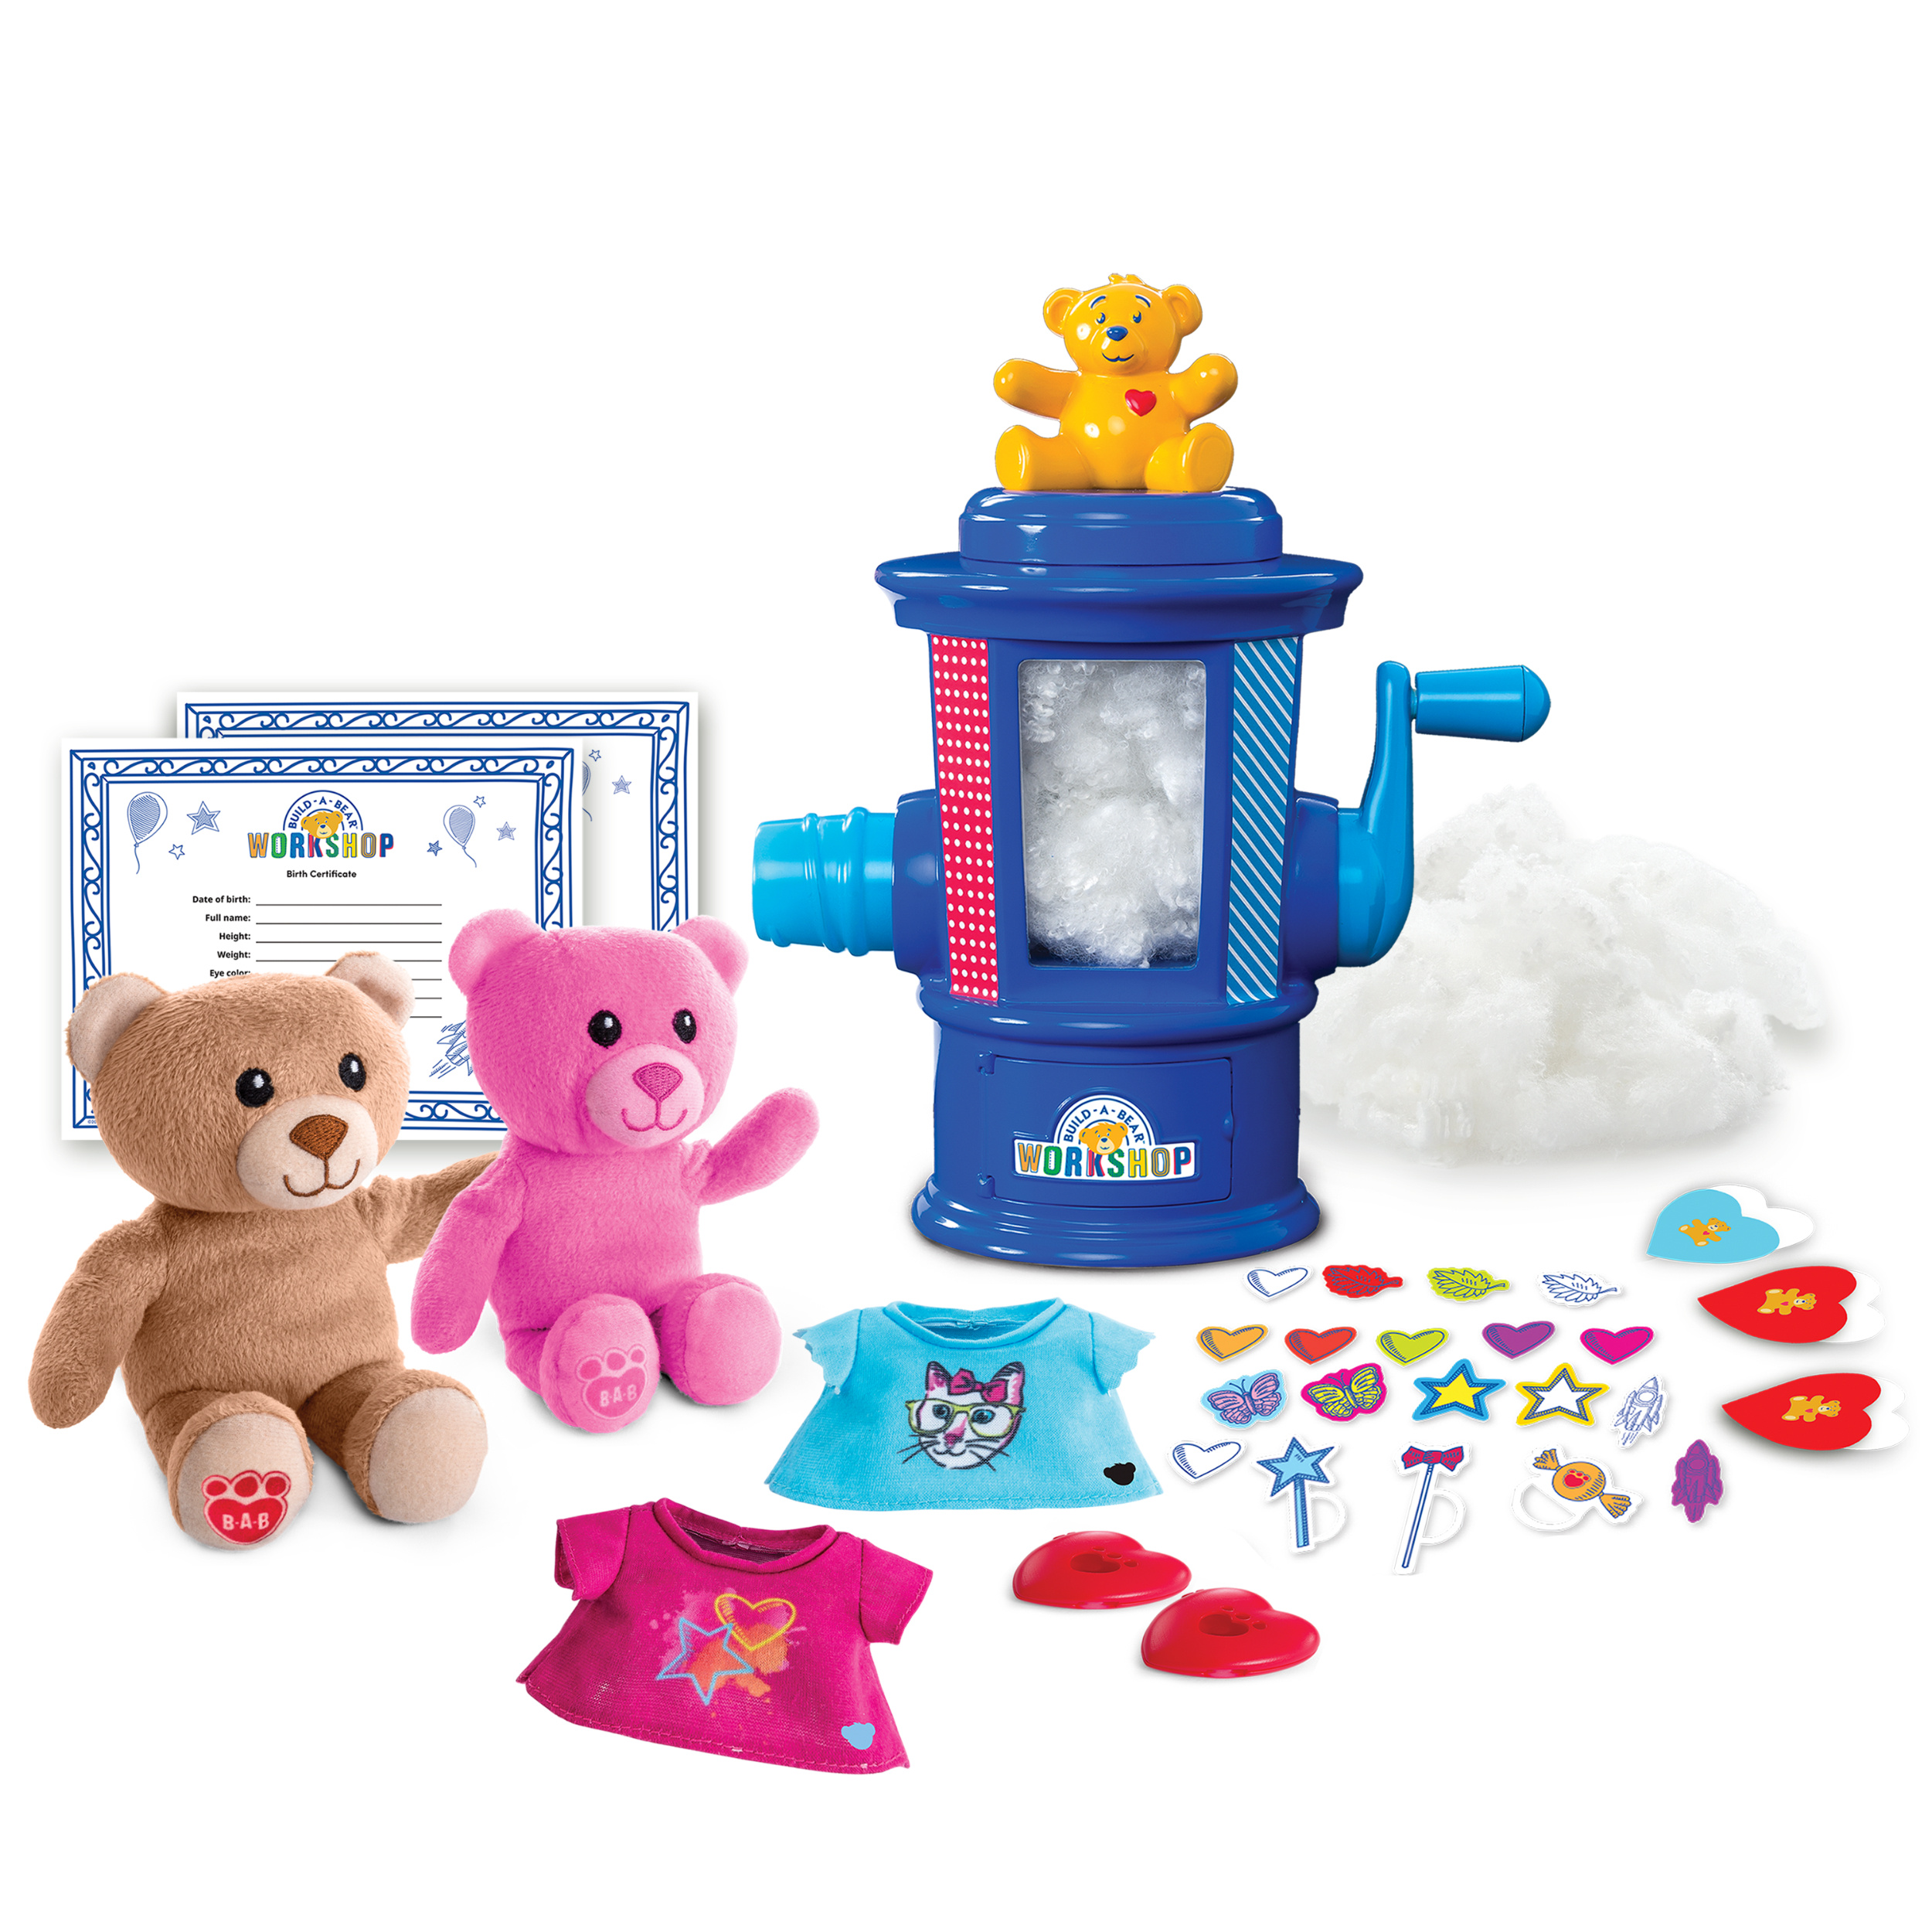 Build A Bear Workshop Stuffing Station By Spin Master (Edition Varies)    Walmart.com